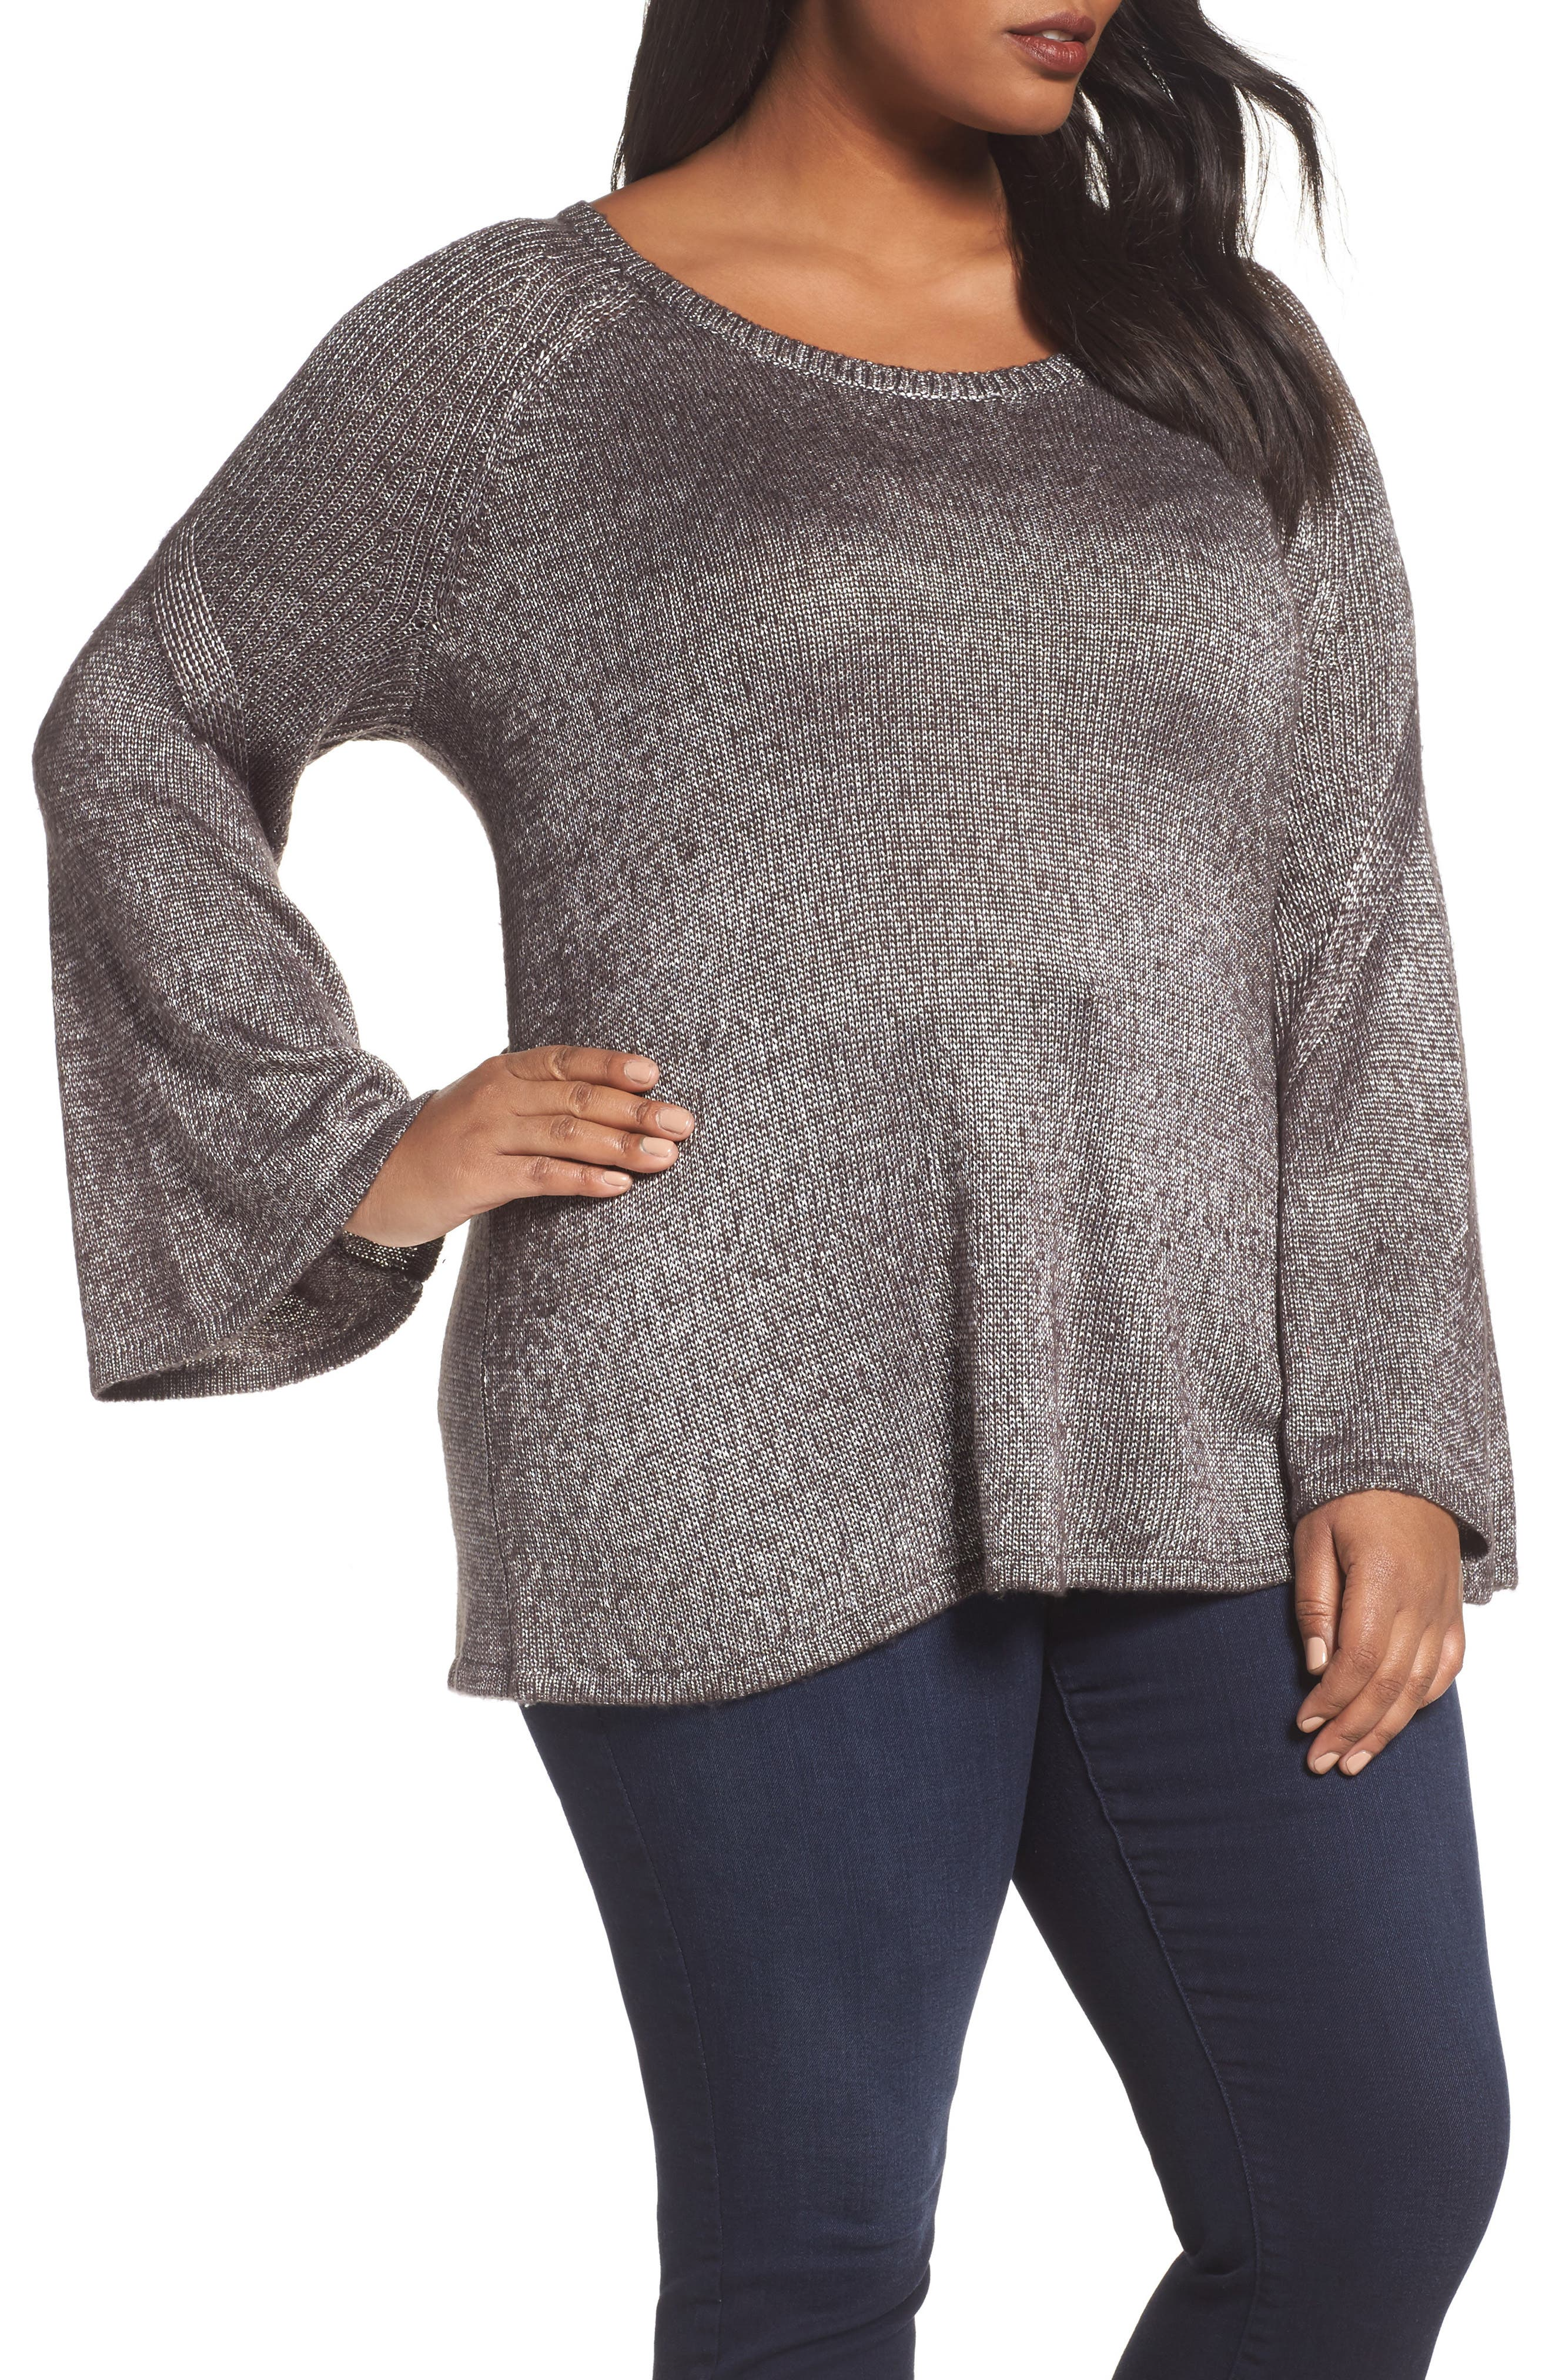 Bell Sleeve Sweater,                             Main thumbnail 1, color,                             Black- Silver Metallic